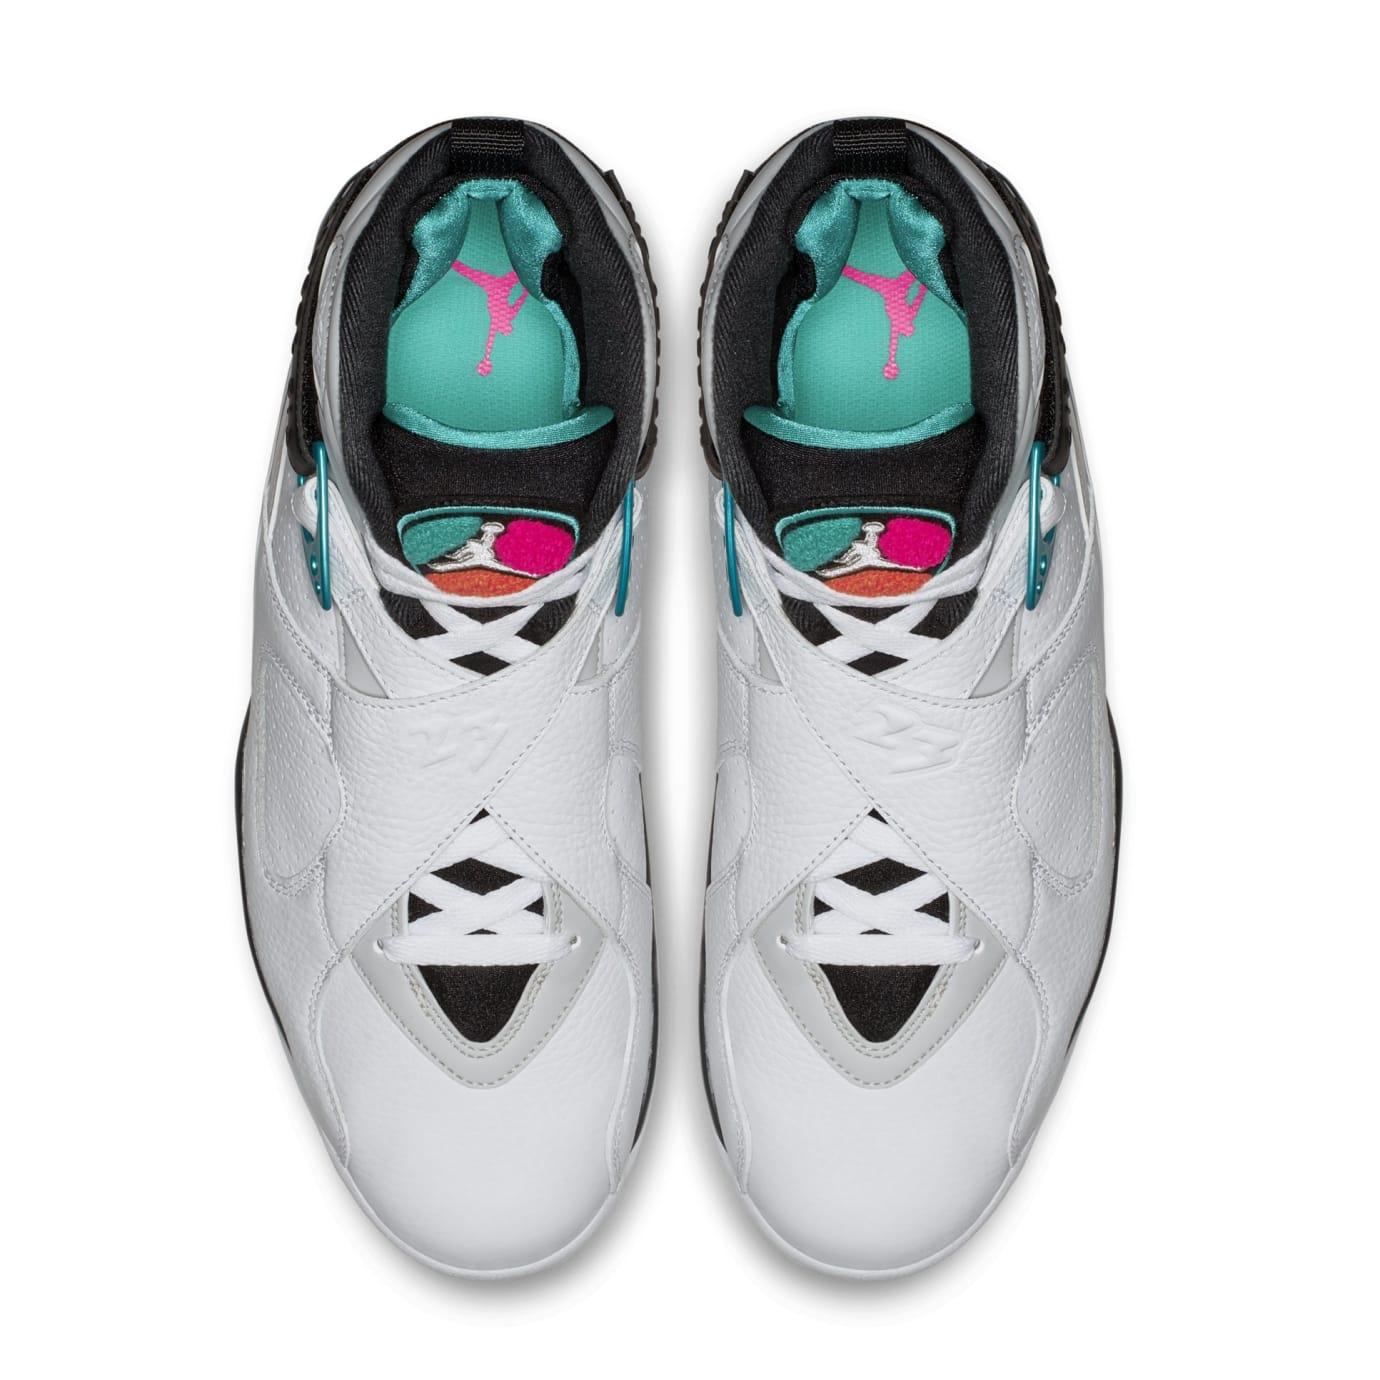 new style 62d62 666df Air Jordan 8 VIII South Beach Release Date 305381-113 | Sole ...